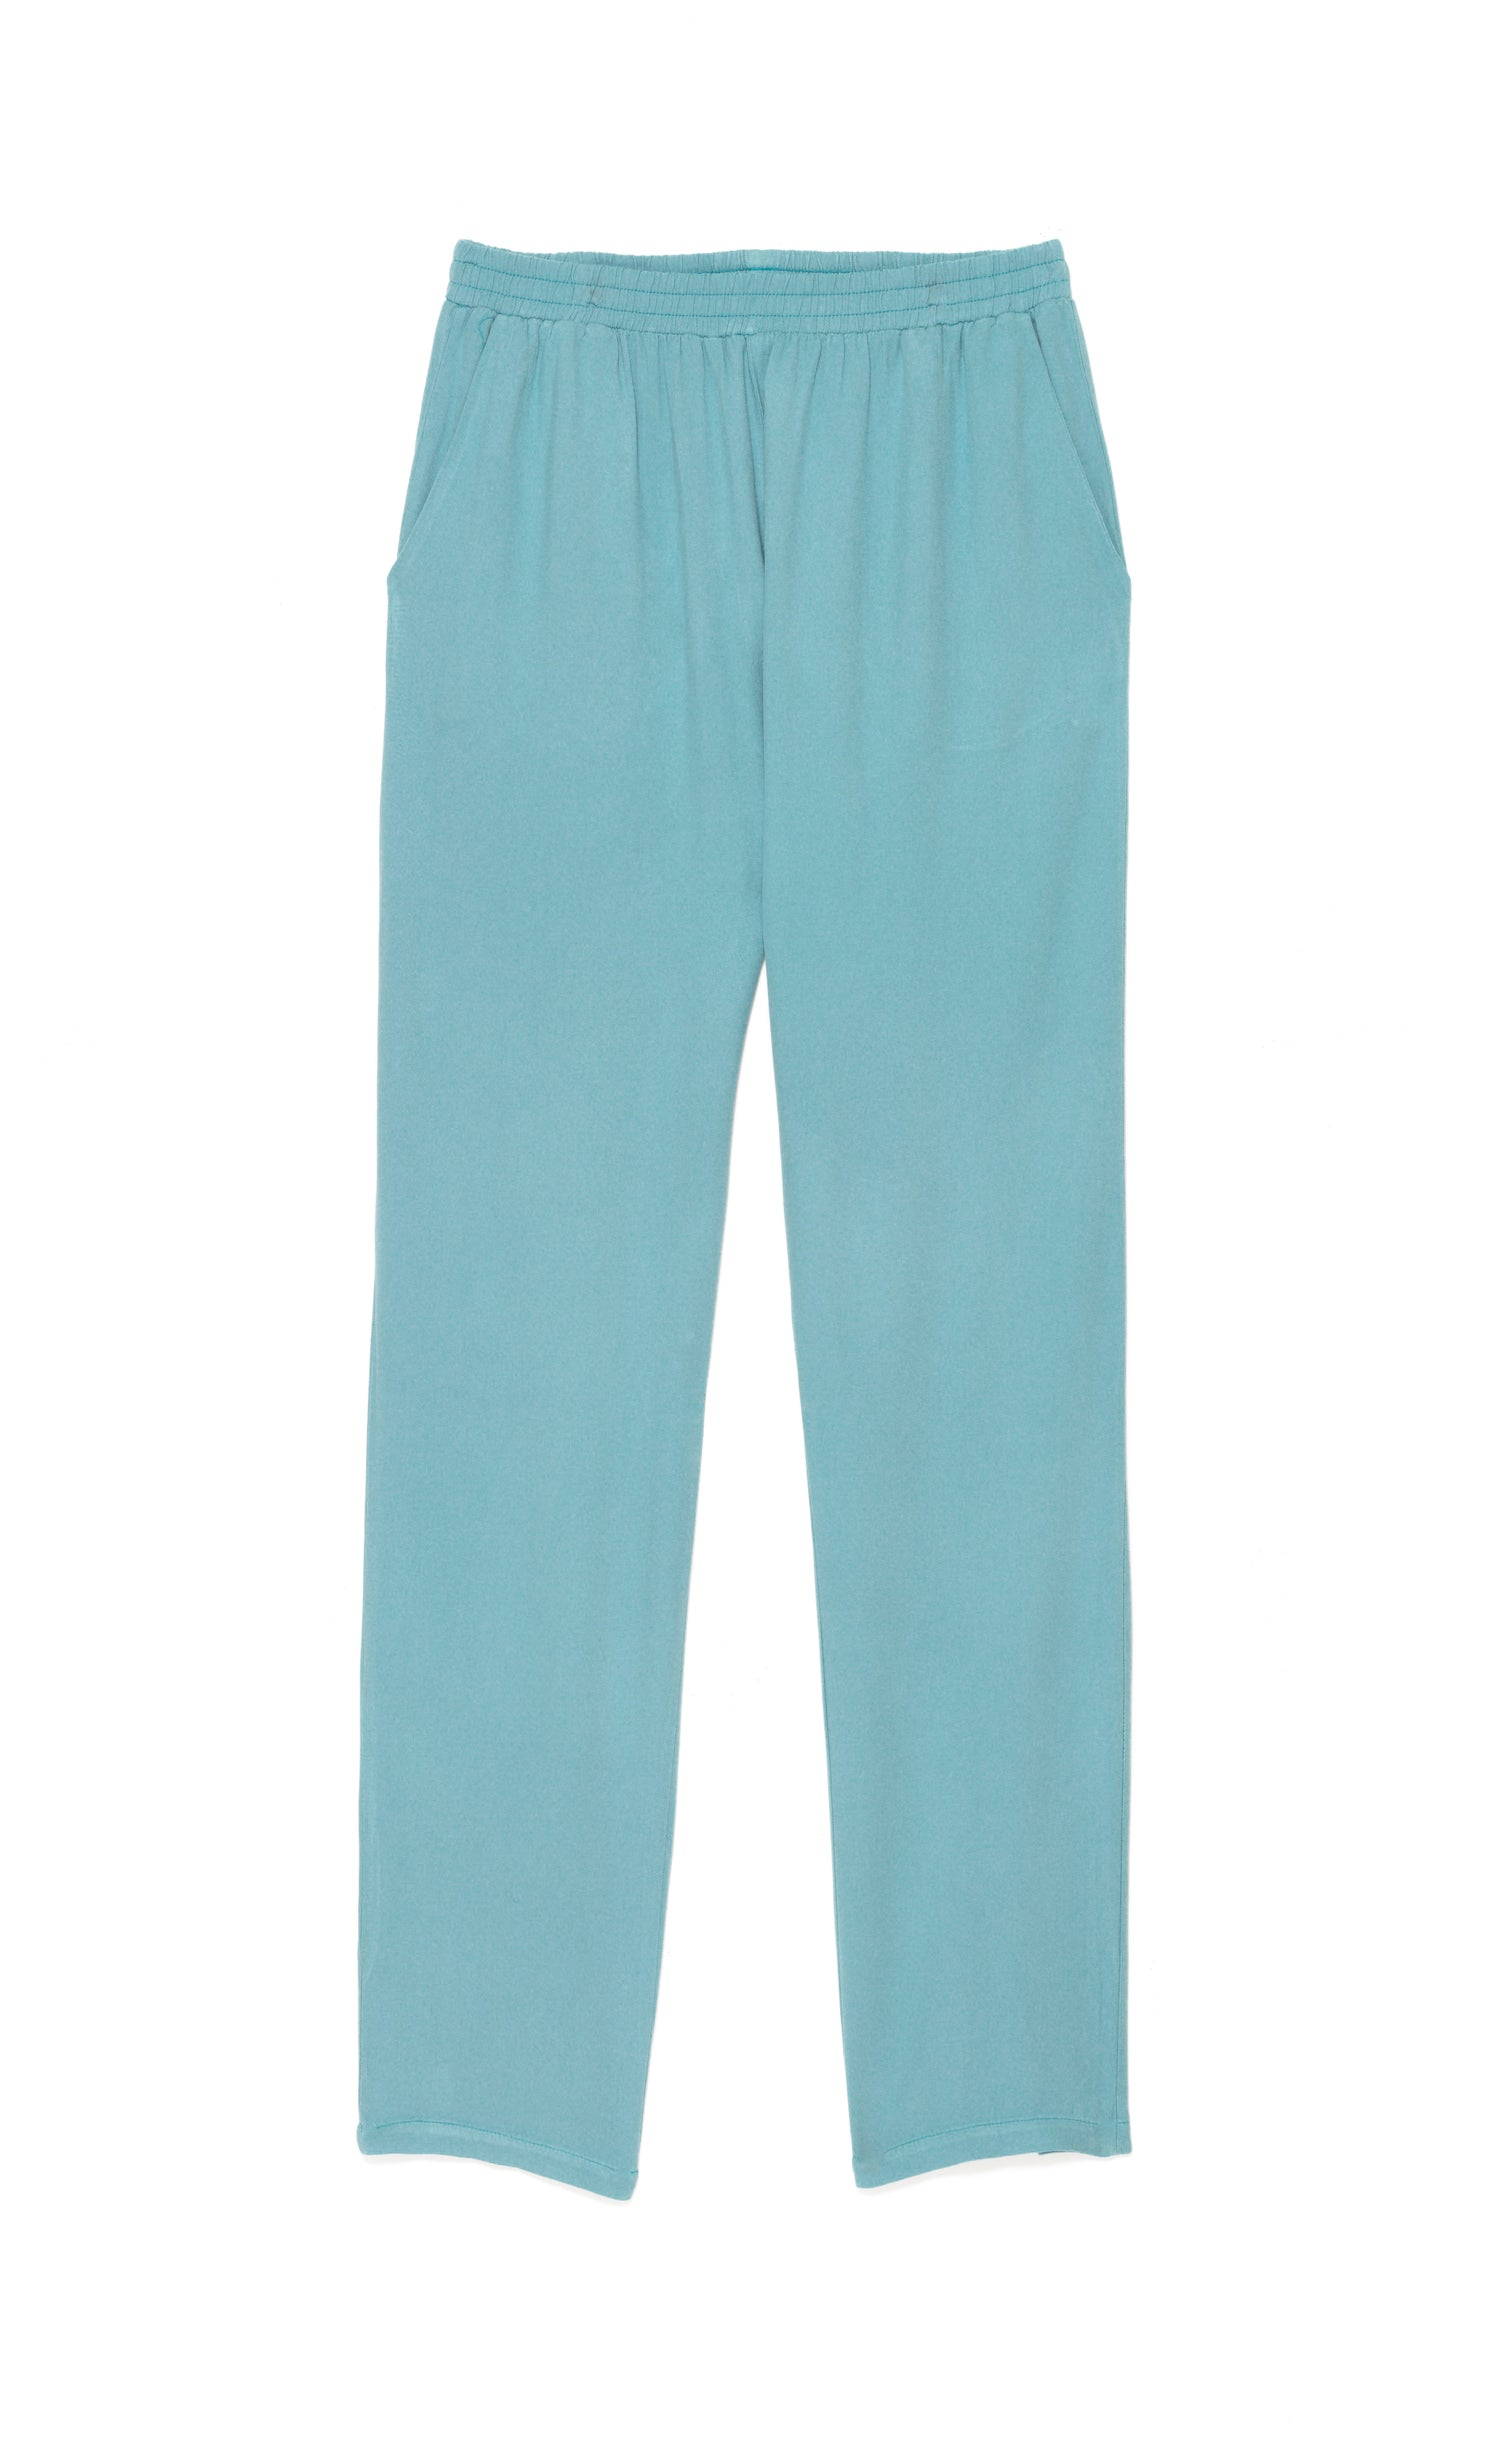 Image of Pantalon twill viscose PENELOPE coloris pastels 99€ -50%